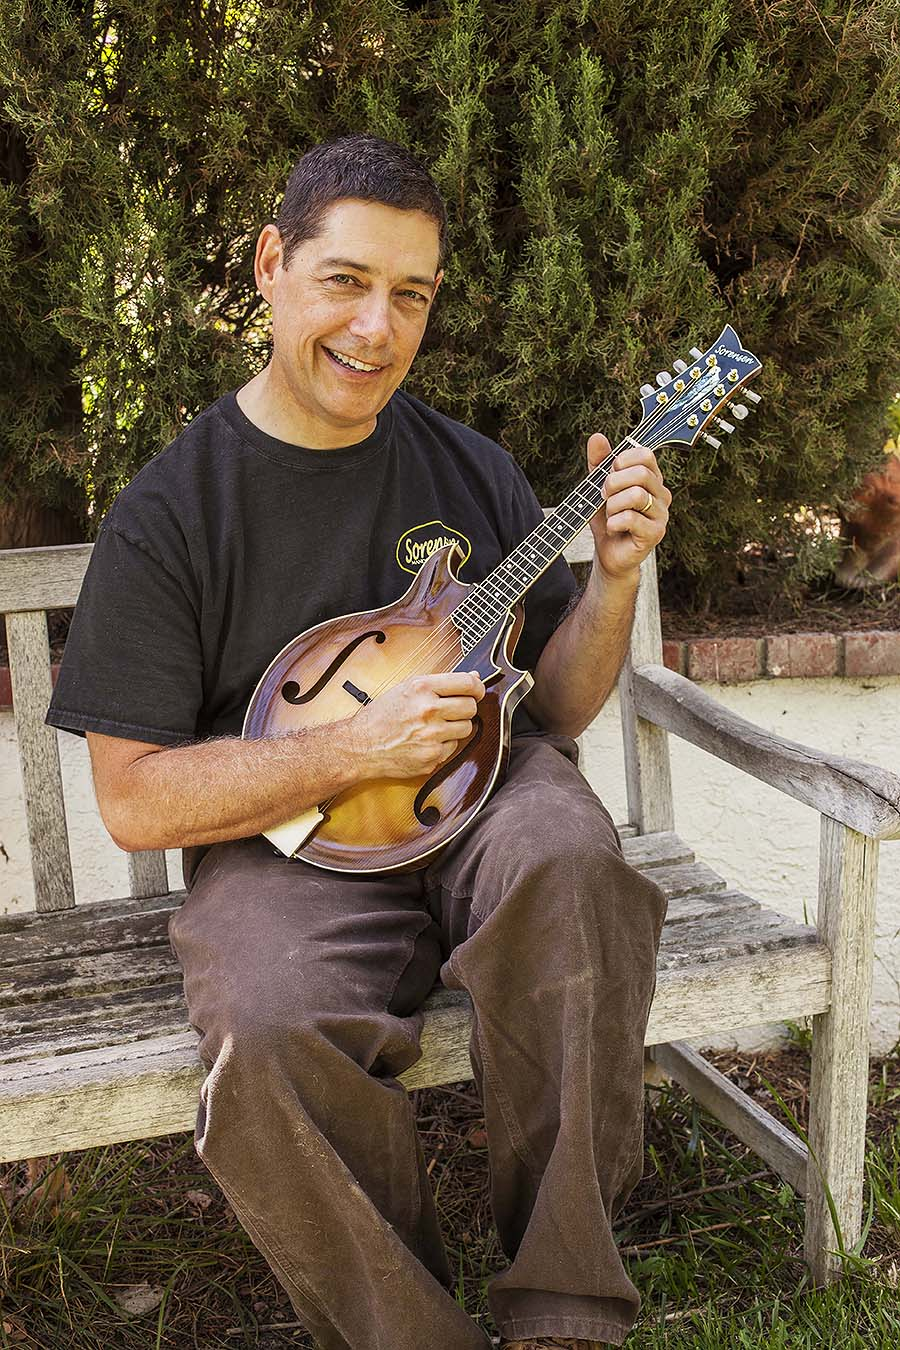 Steve sorensen with a sprite two-point mandolin, Photo by Hermon Joyner.